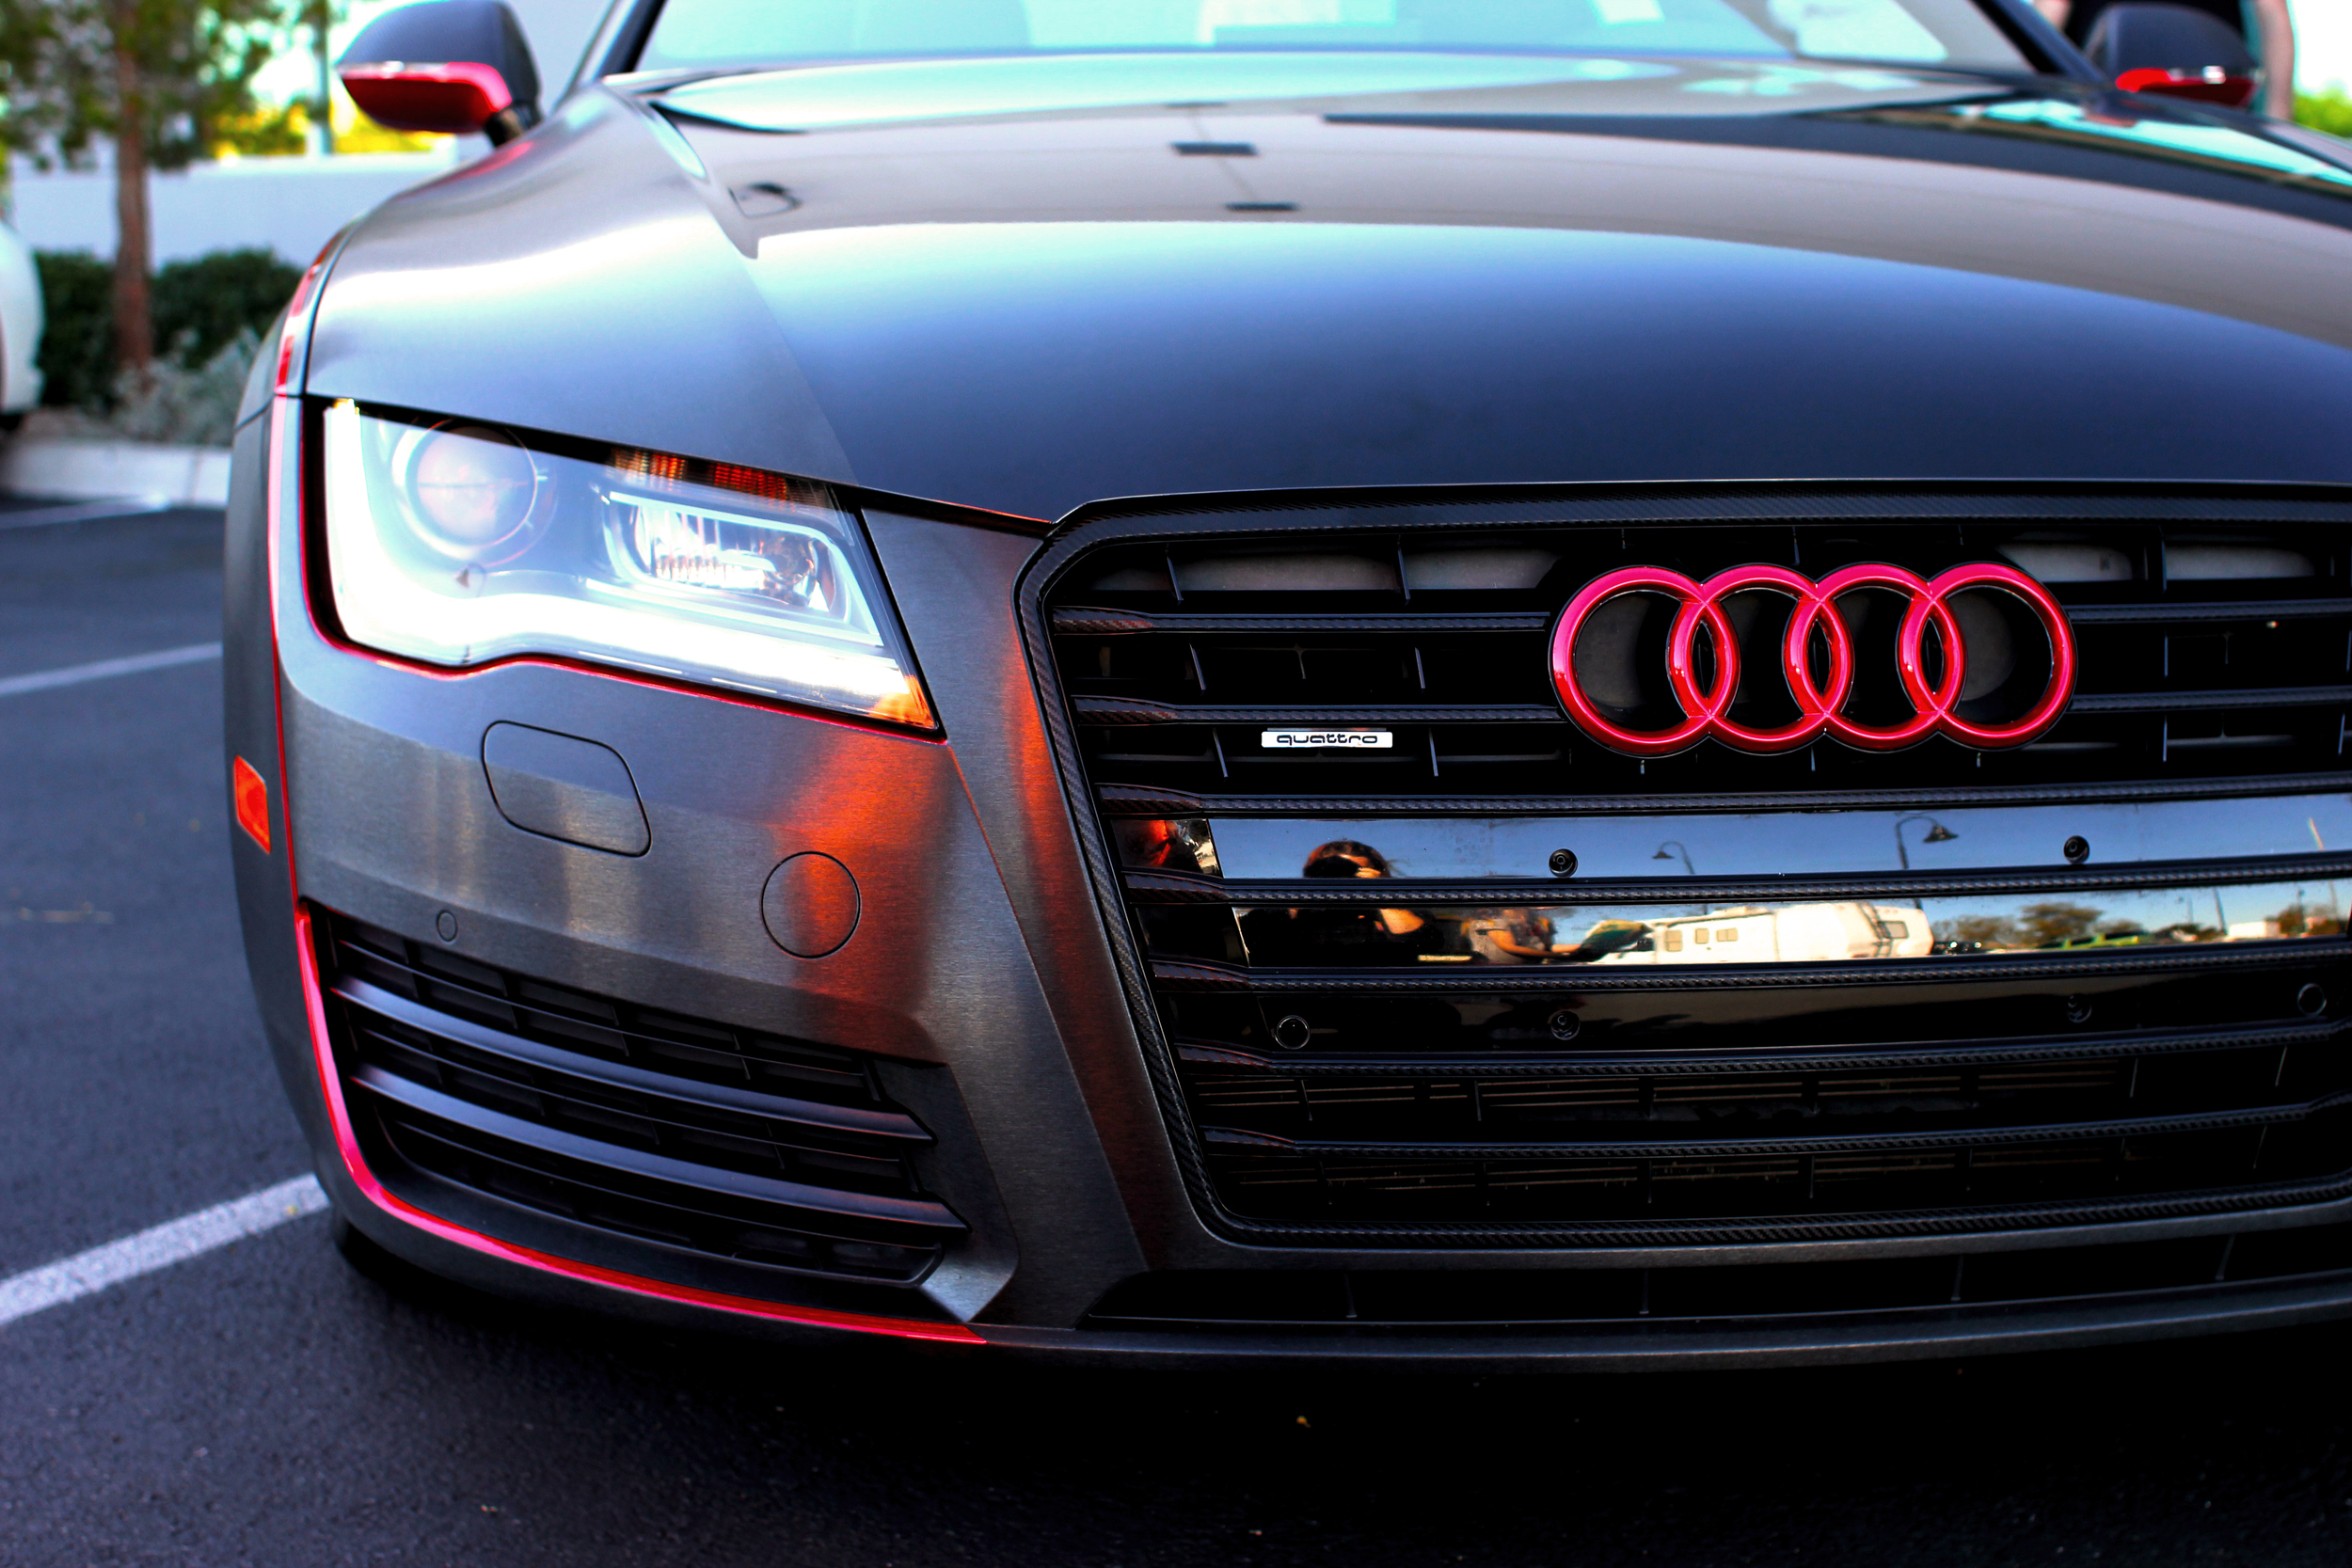 Audi A7 Brushed Black And More Incognito Wraps